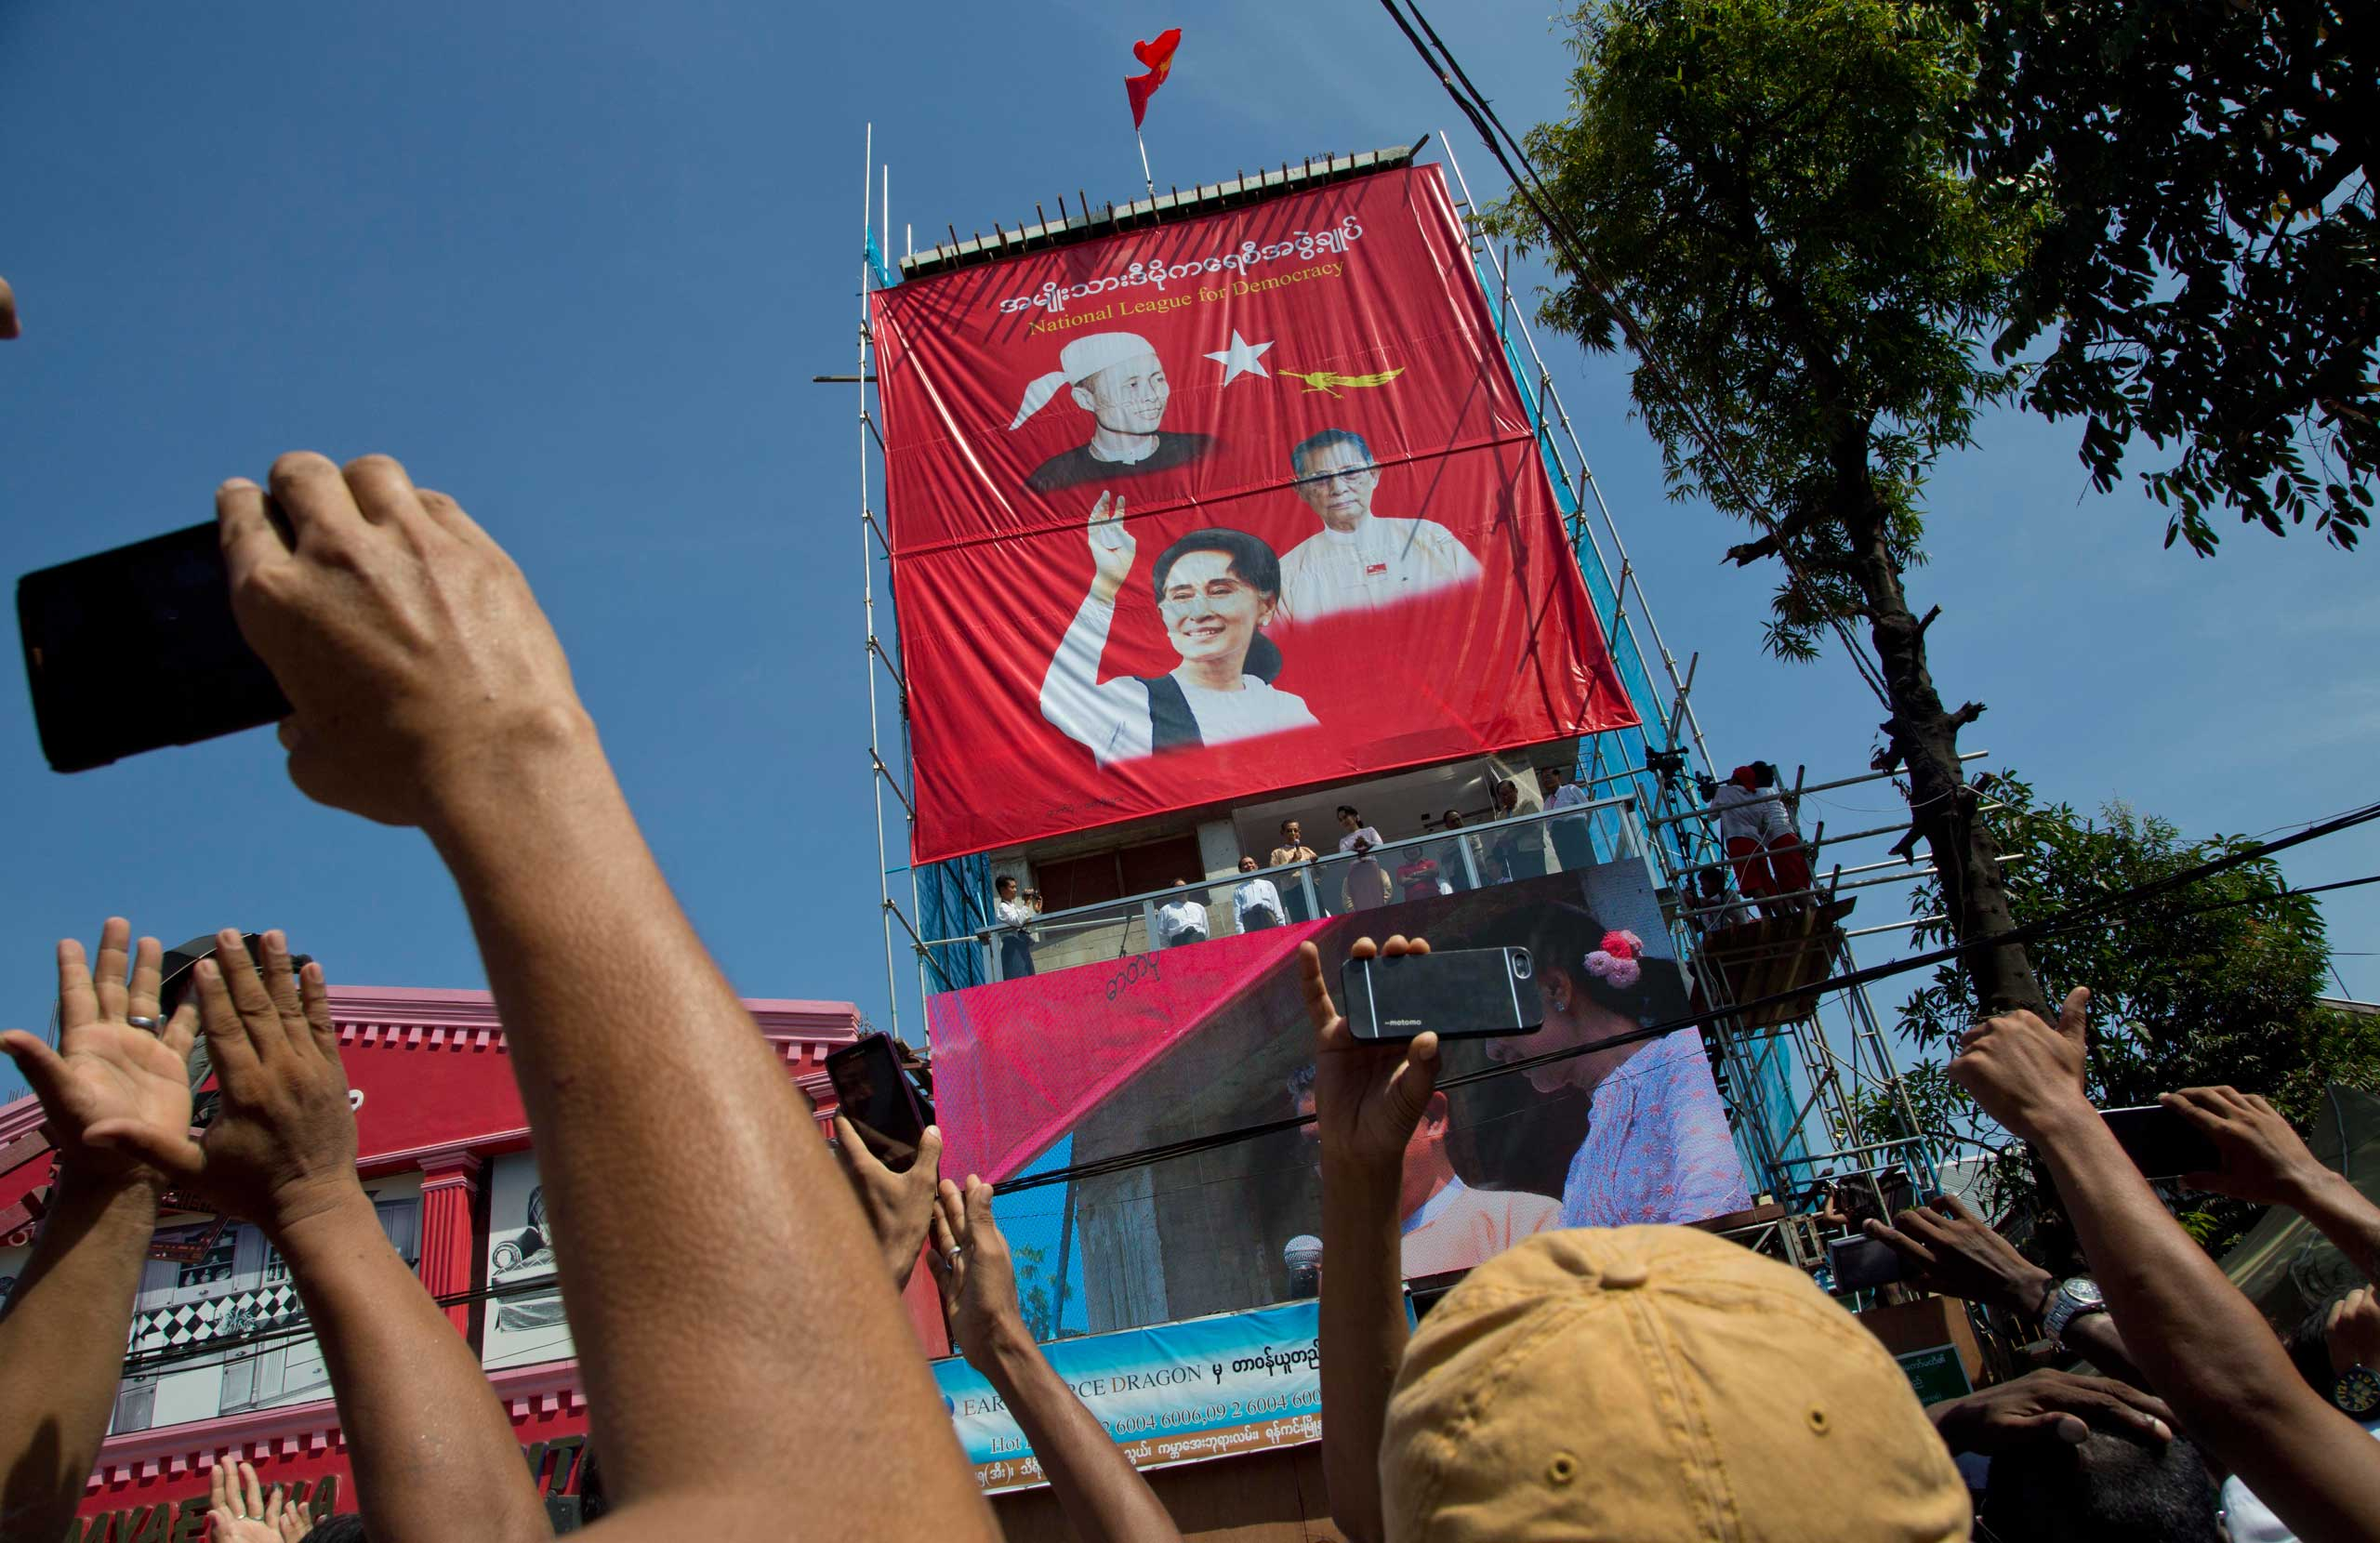 Supporters clap and take pictures from their mobile phone cameras as Burma's opposition leader Aung San Suu Kyi and patron Tin Oo deliver address the supporters in Rangoon, Burma, on Nov. 9, 2015.